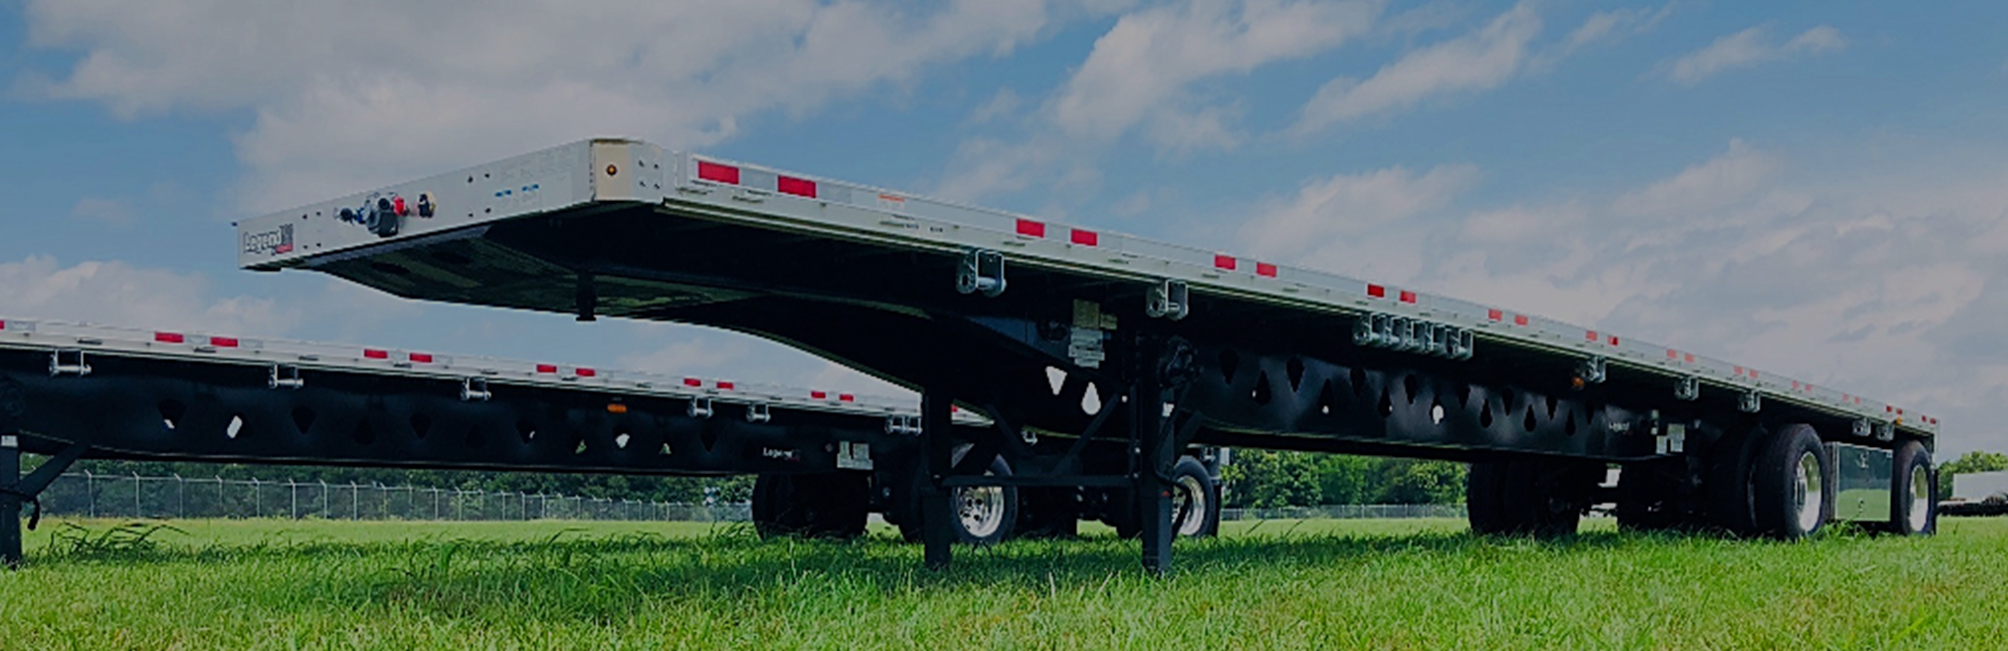 Springfield Trailer Inc. - Always striving to offer you the best service possible